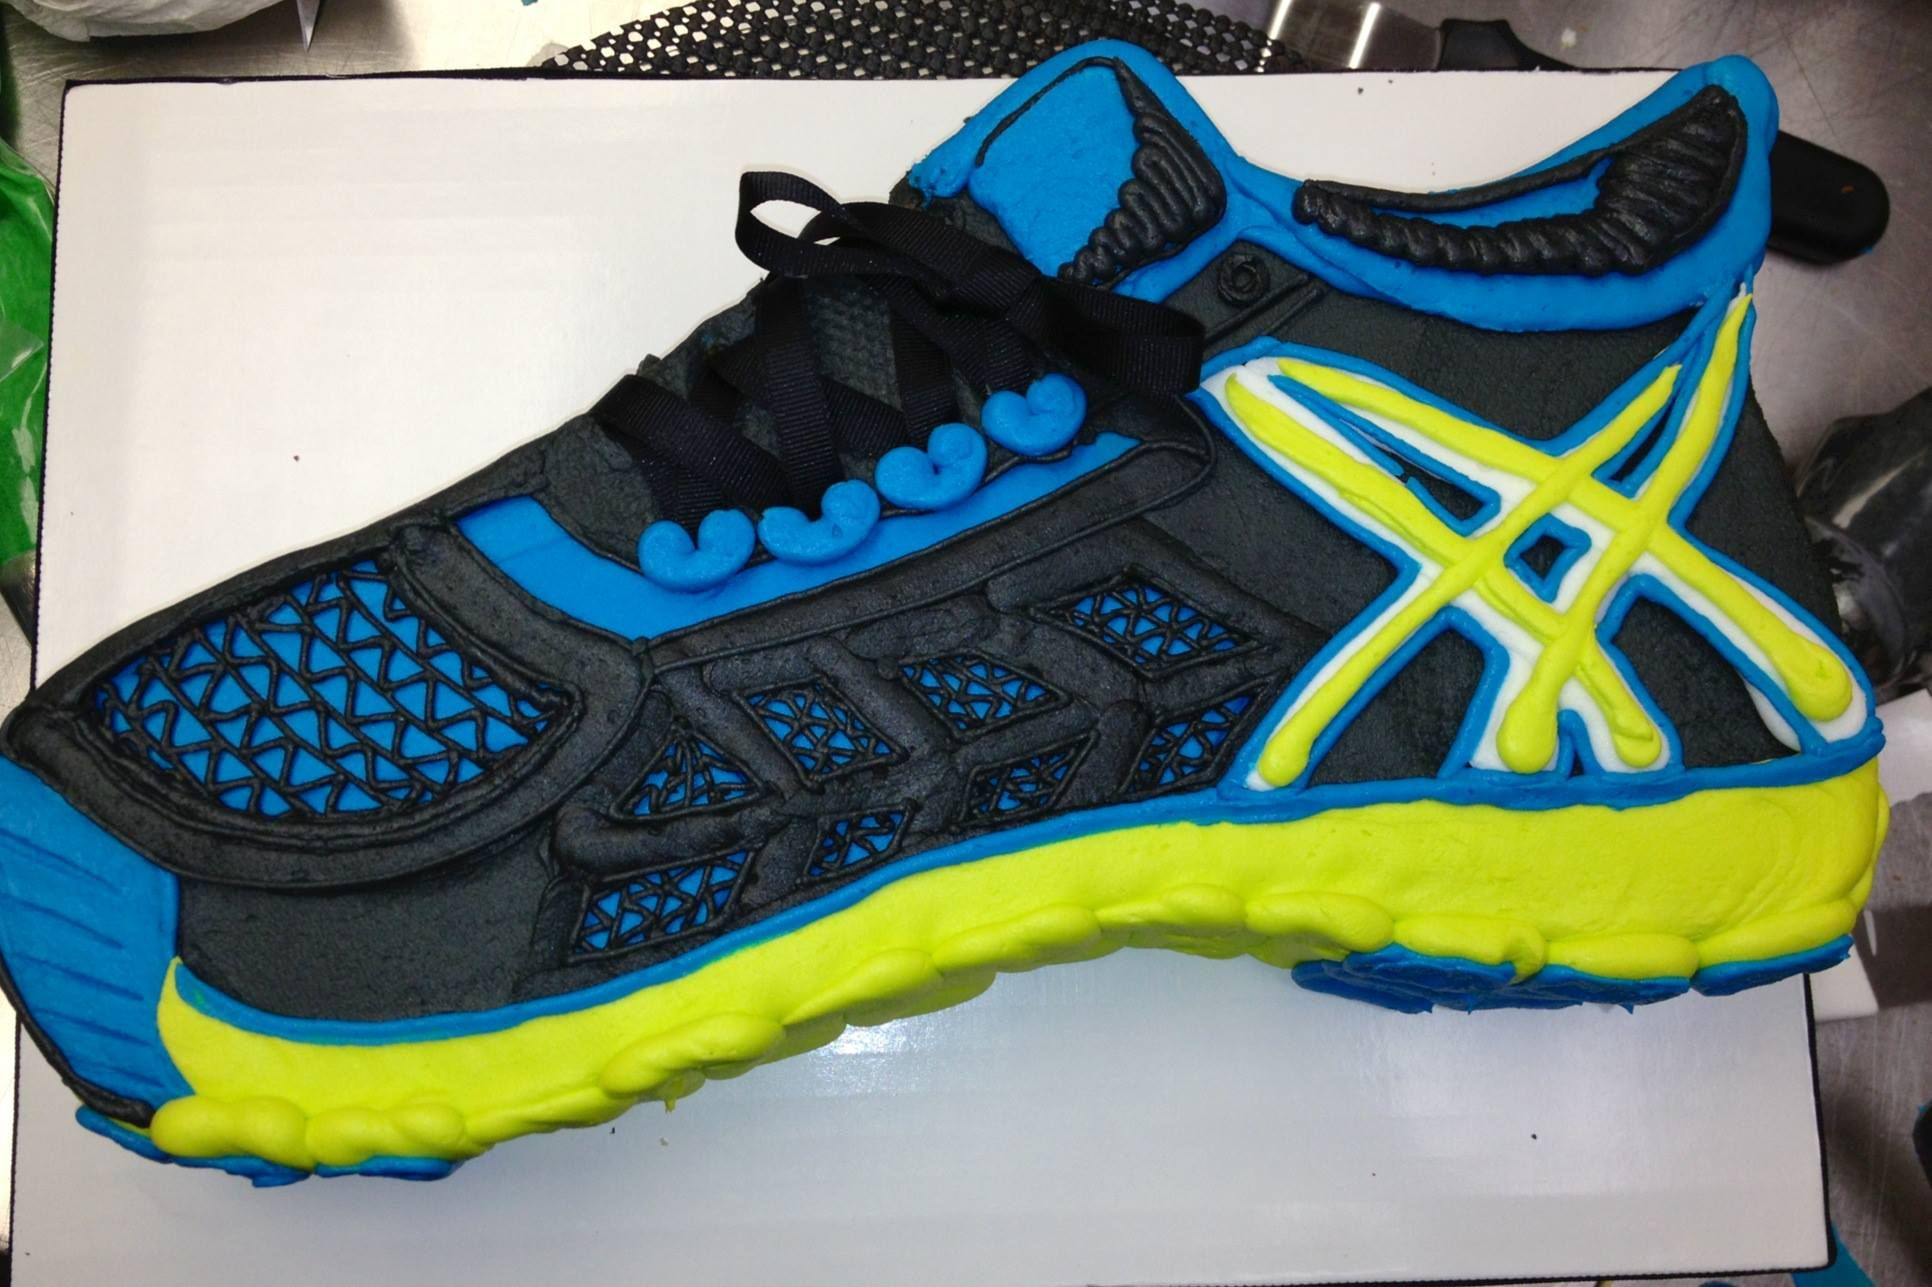 Running Shoe Cake For The Athlete Cake By Cake All Things Yummy